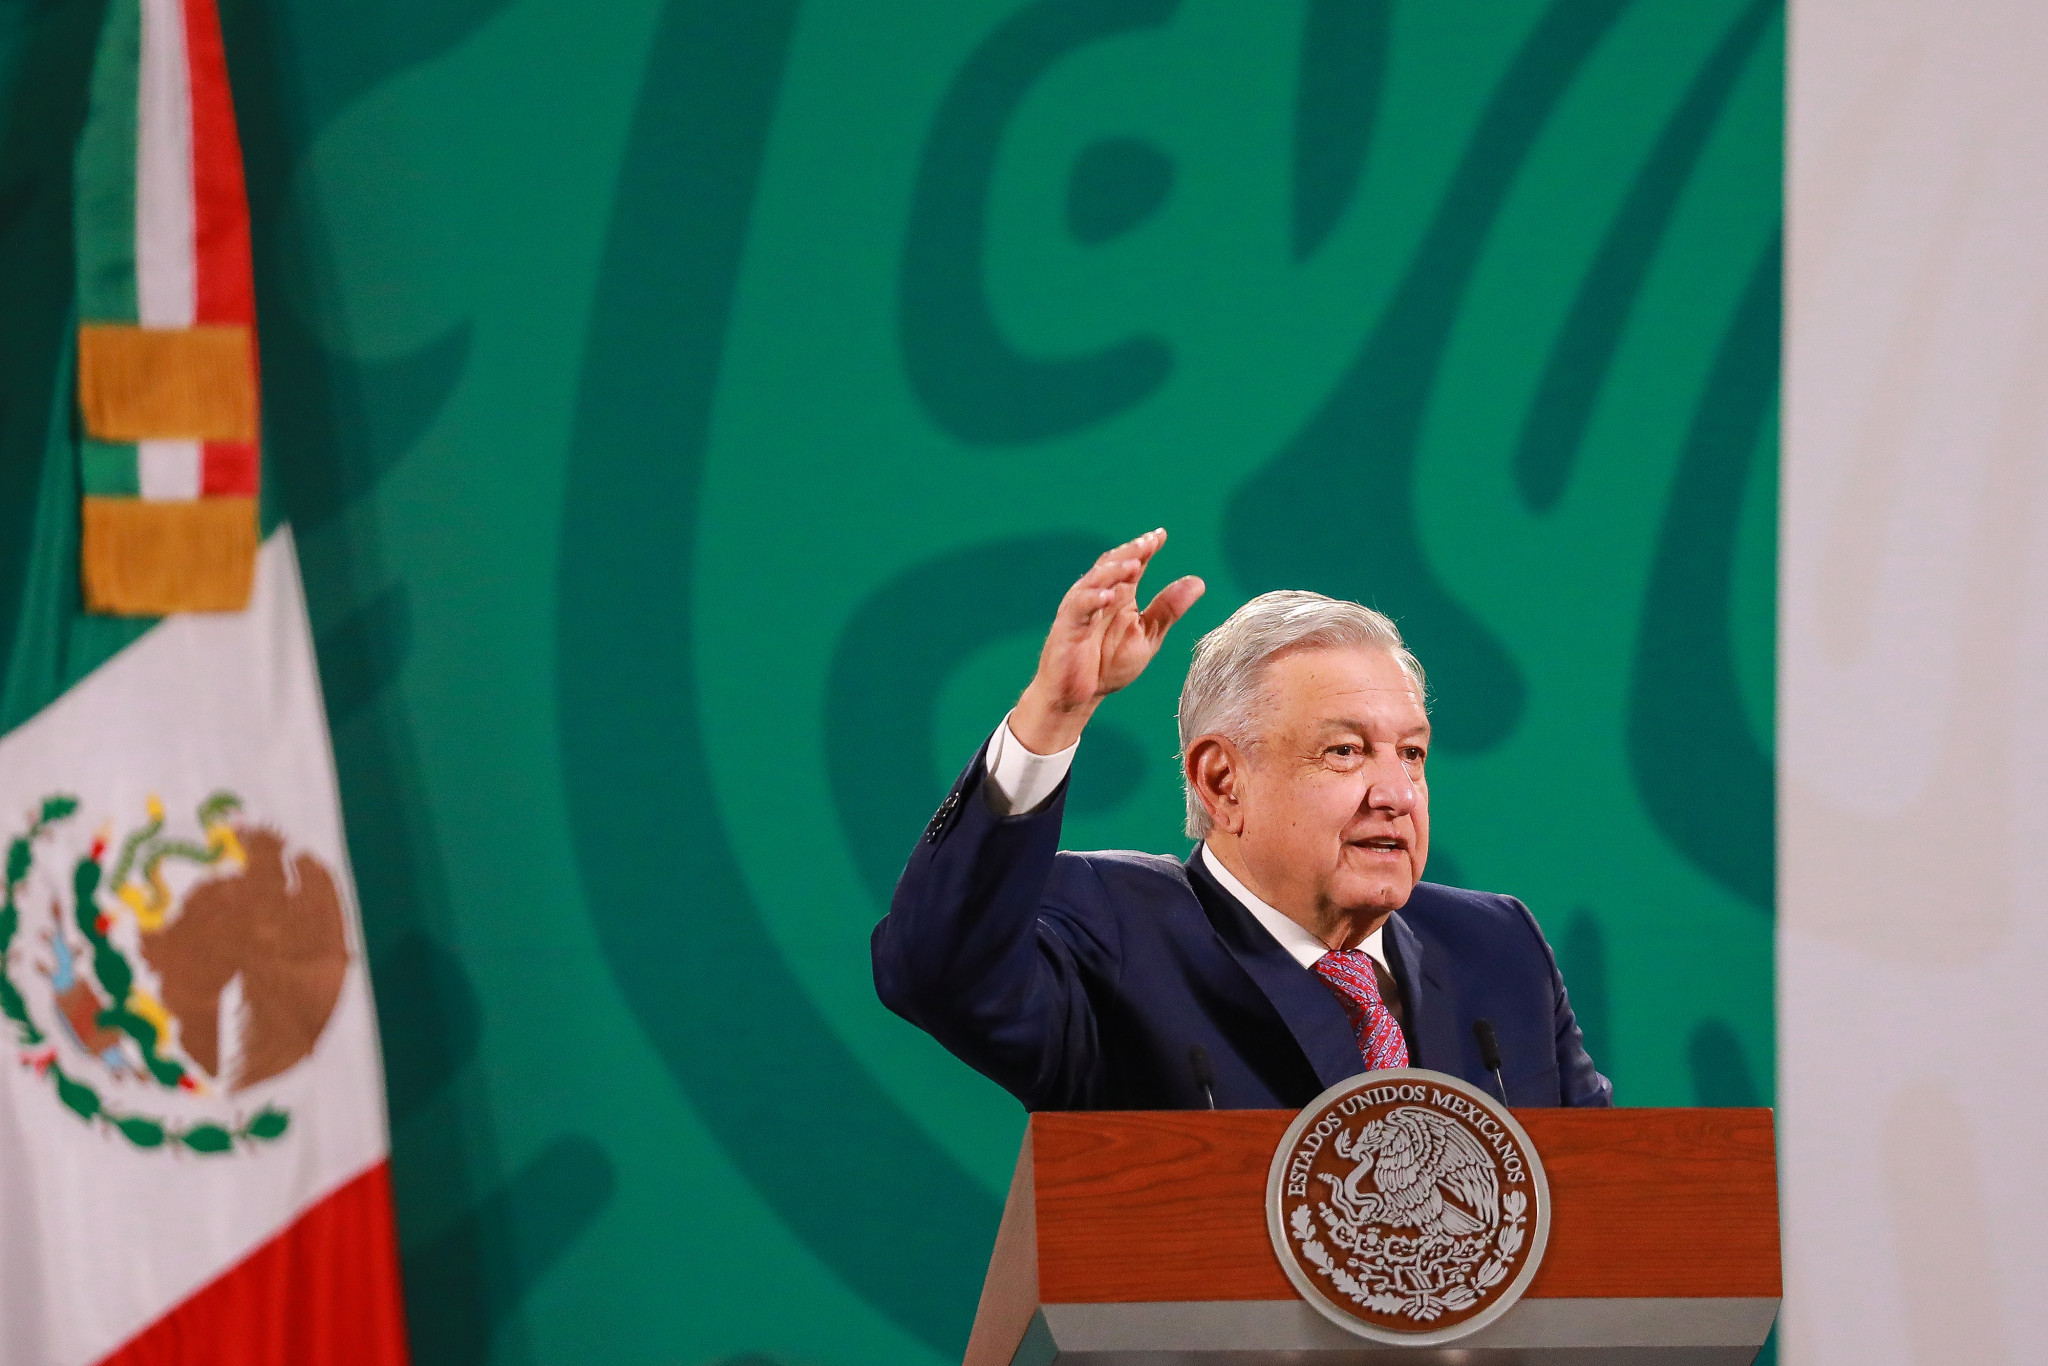 Mexican President confirms Tokyo 2020 athletes in priority groups for COVID-19 vaccines